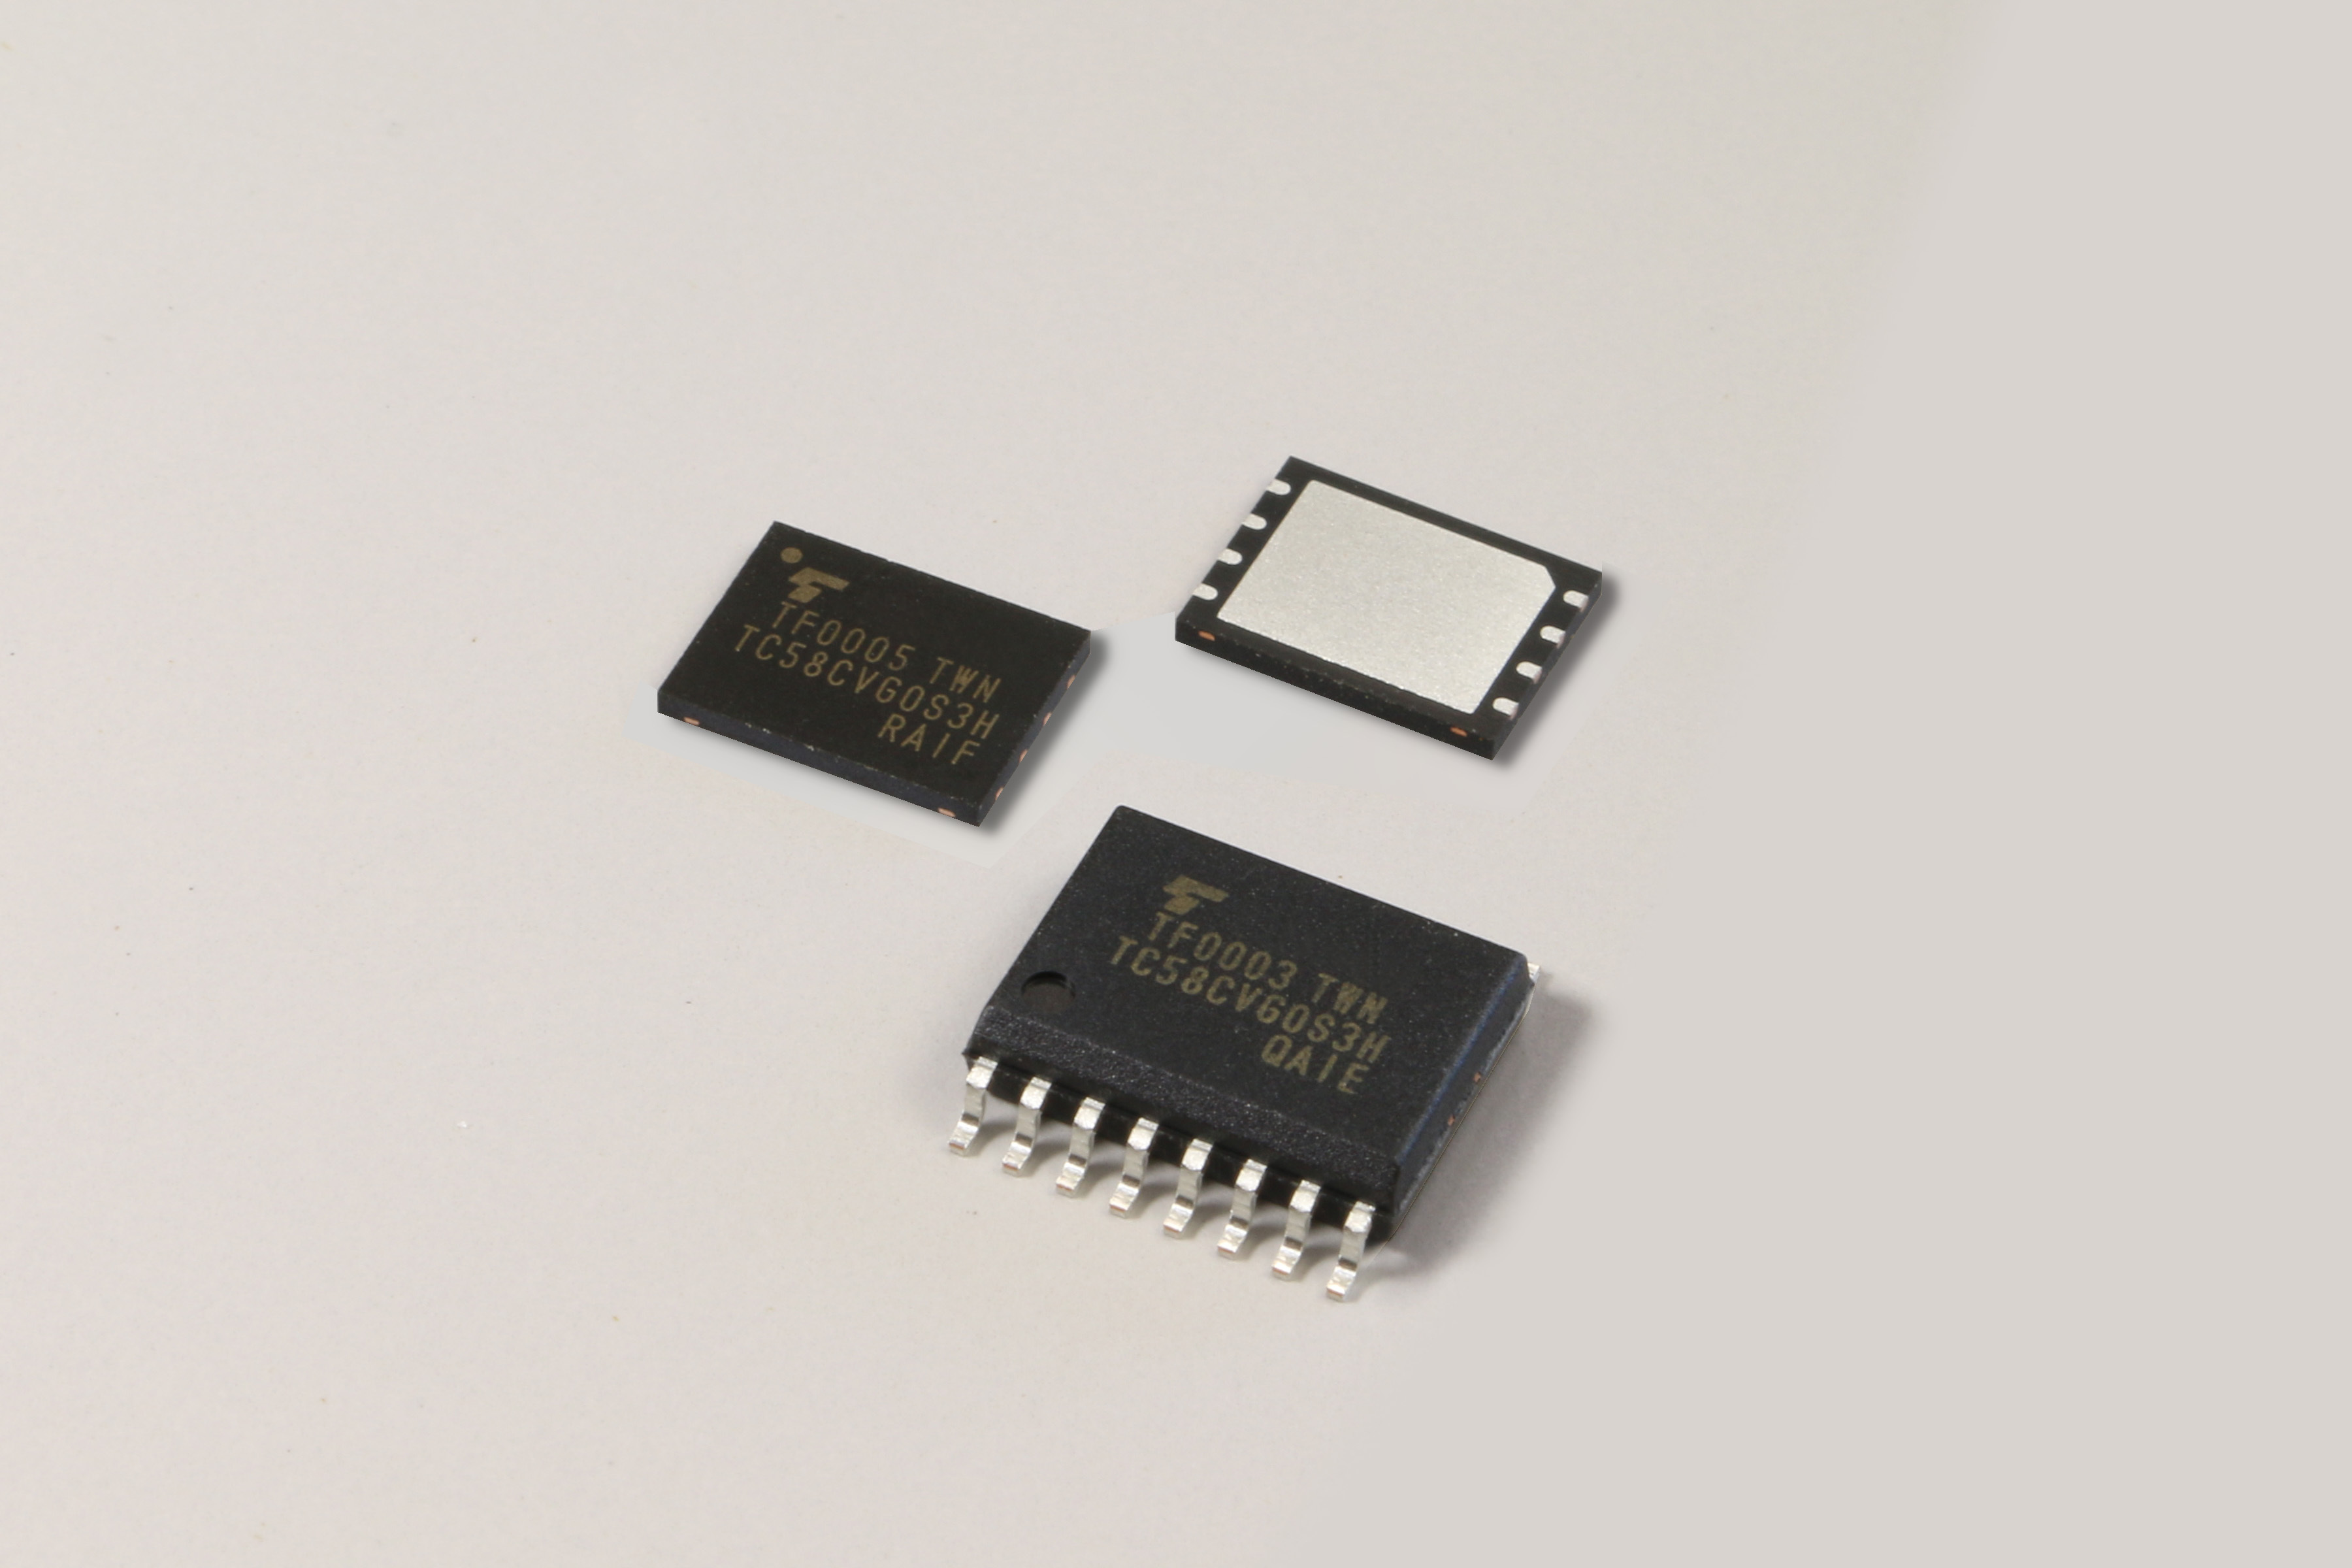 Toshiba Launches New NAND Flash Memory Products for Embedded